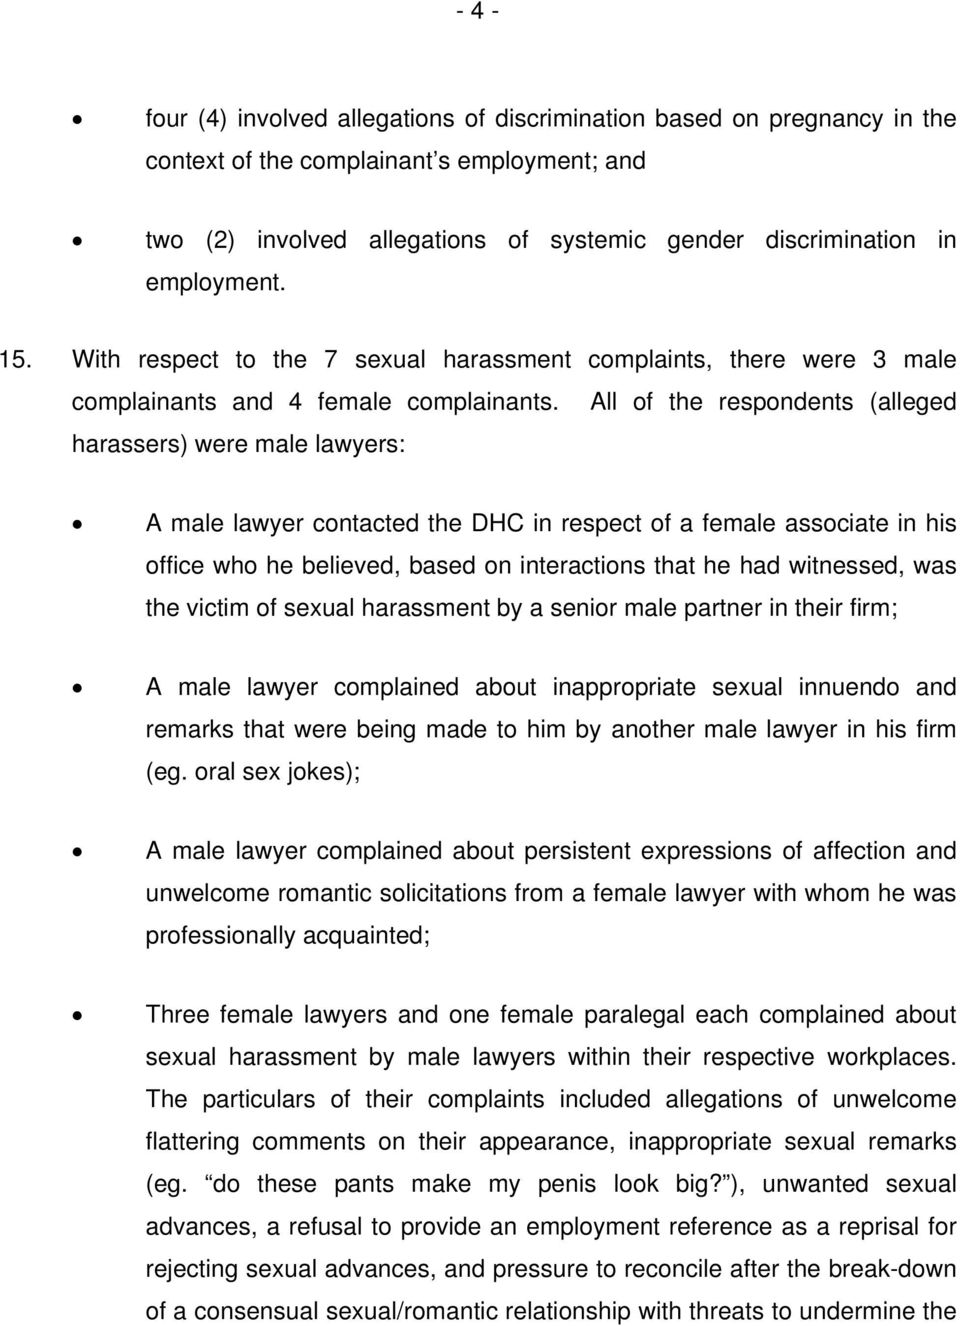 All of the respondents (alleged harassers) were male lawyers: A male lawyer contacted the DHC in respect of a female associate in his office who he believed, based on interactions that he had